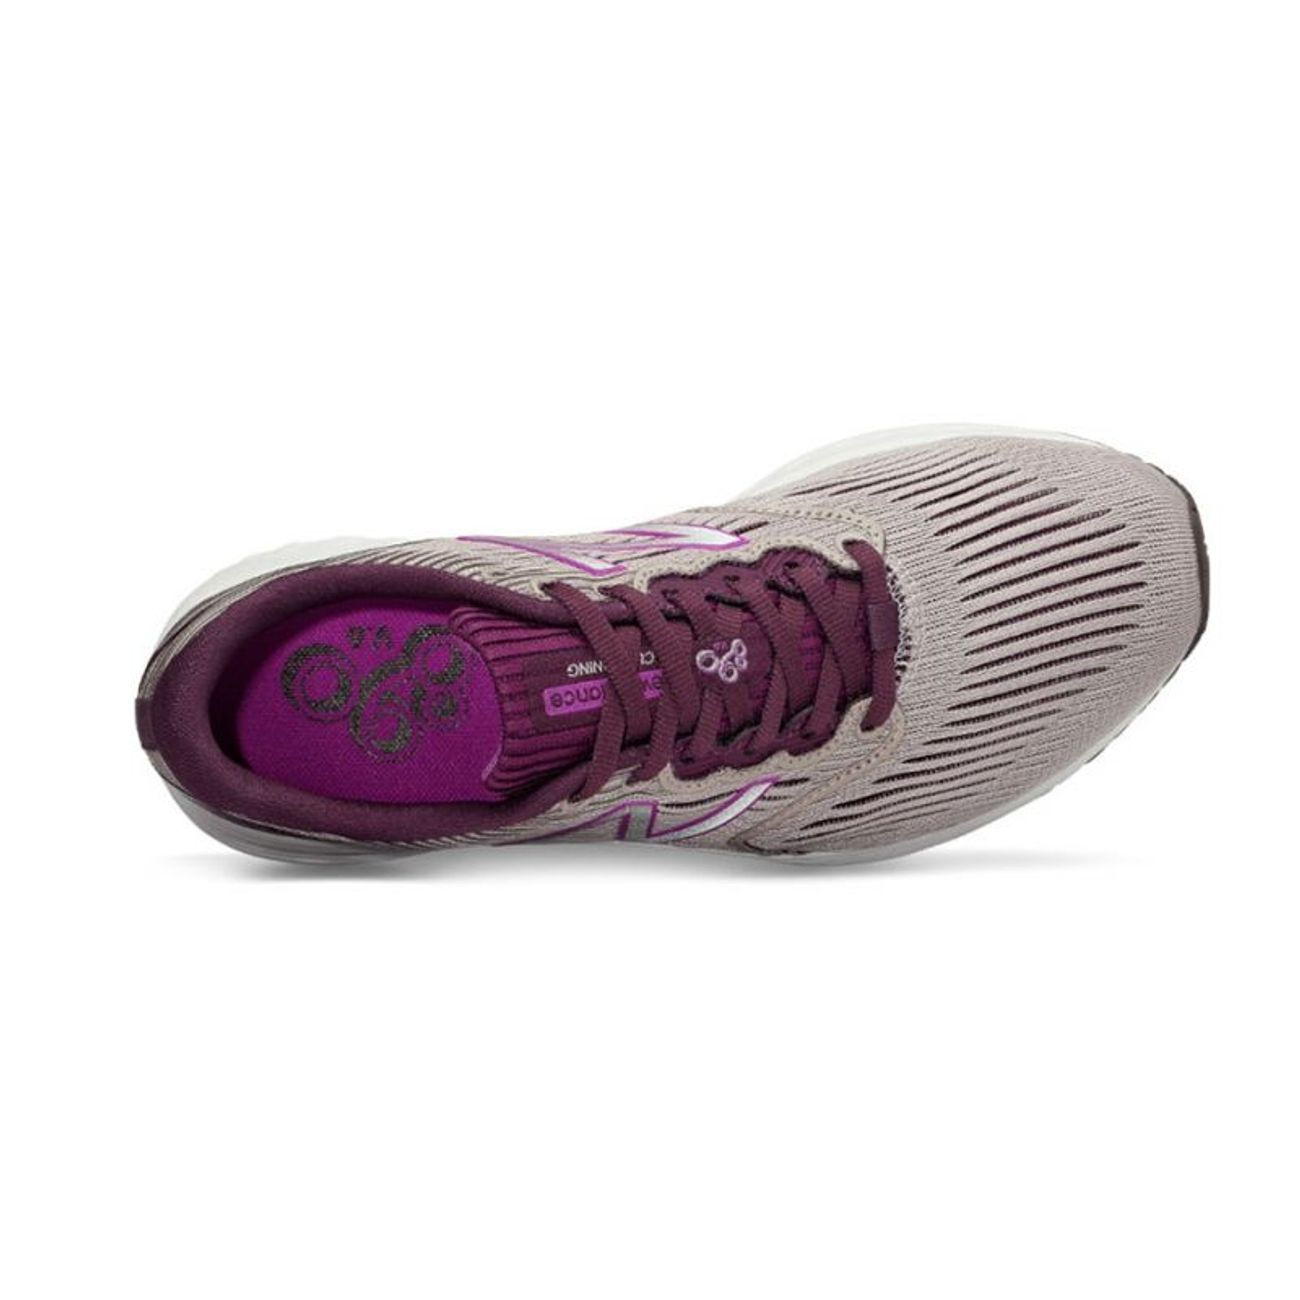 W890 New Balance Adulte Rose Femme W890lc6 Padel 2YWIeE9DH